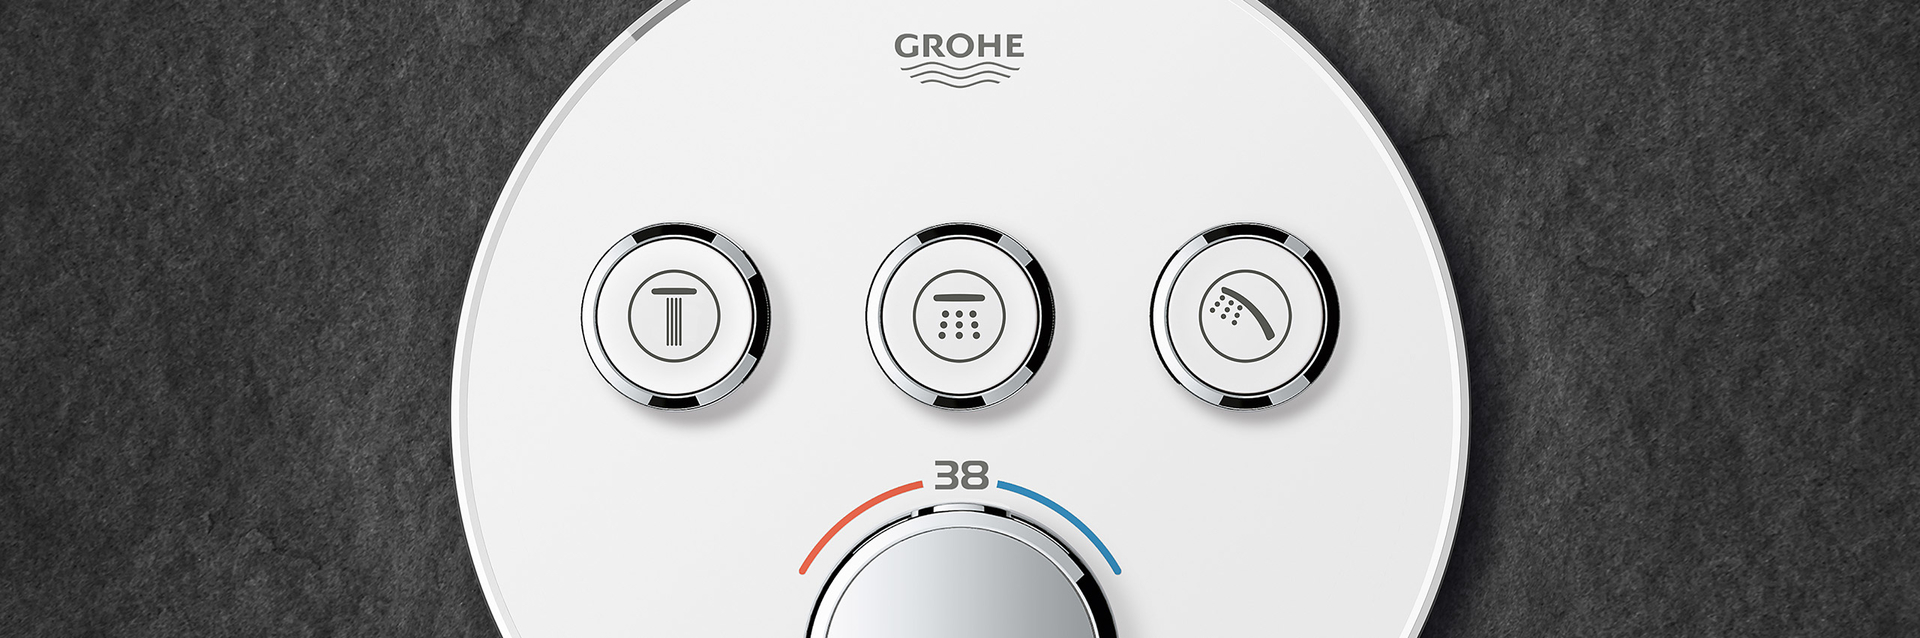 Grohe rainshower SmartControl - Grohe rainshower SmartControl